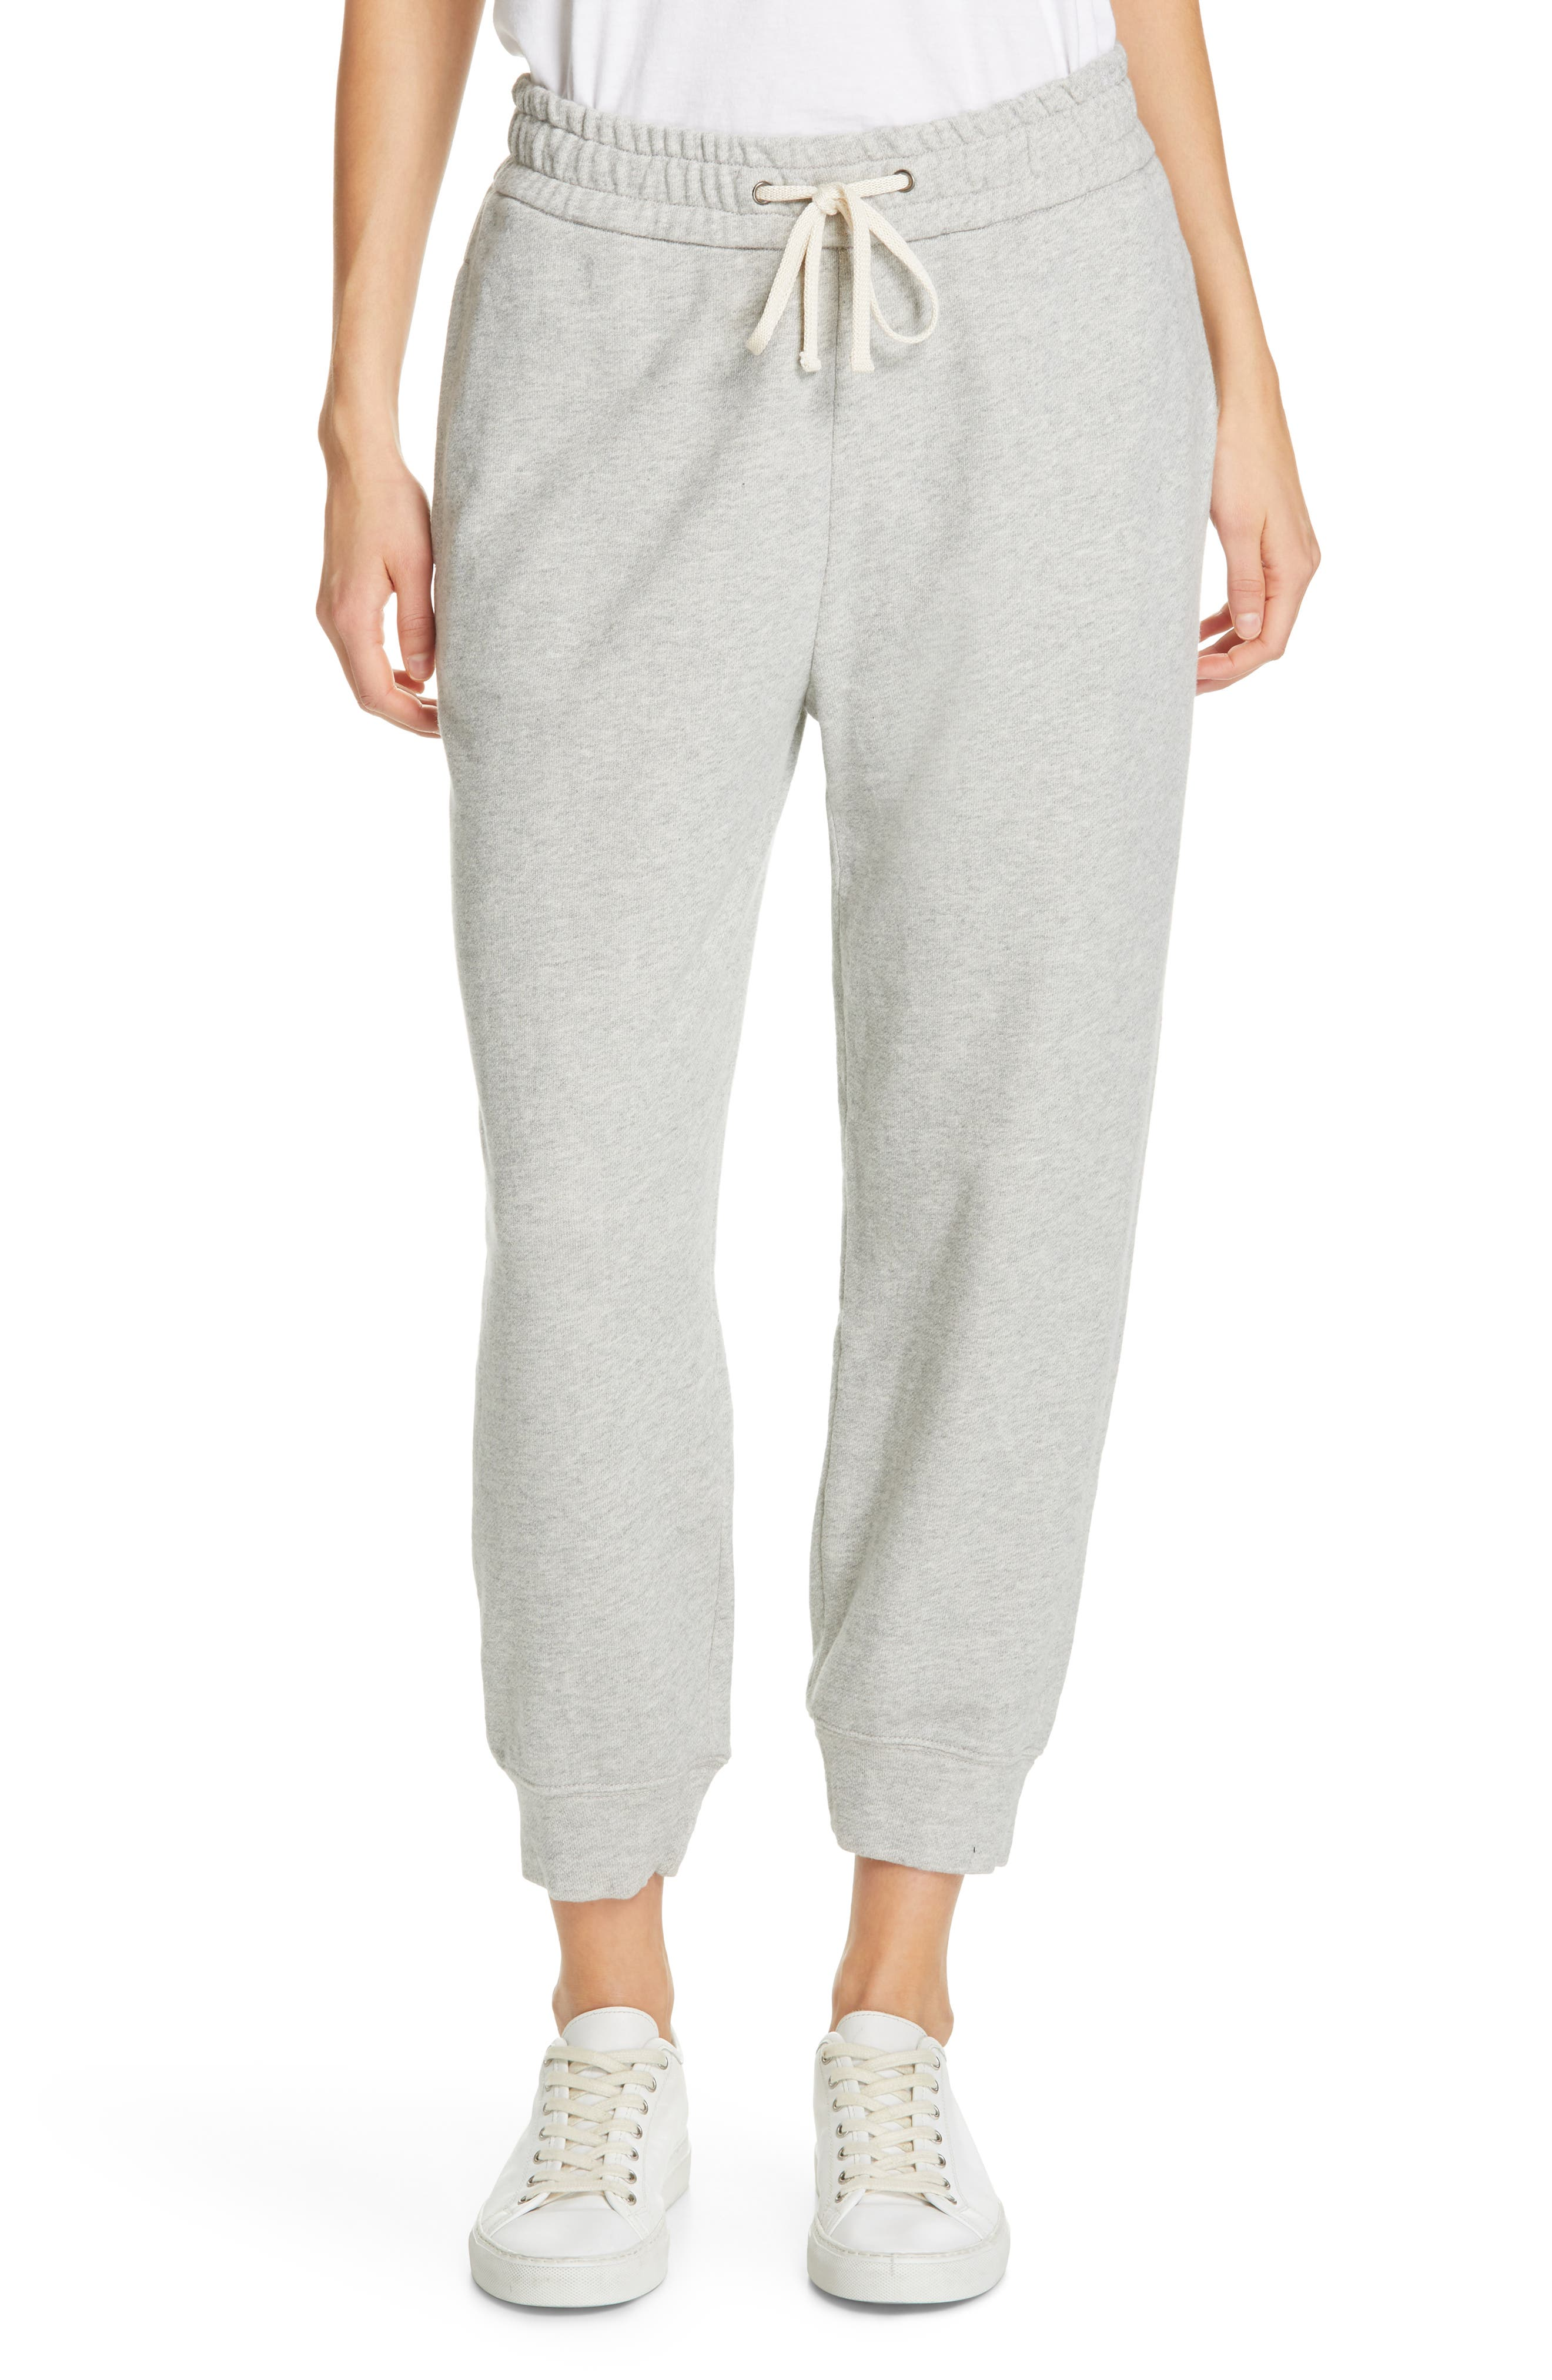 James Perse Relaxed Luxe Sweatpants, Grey